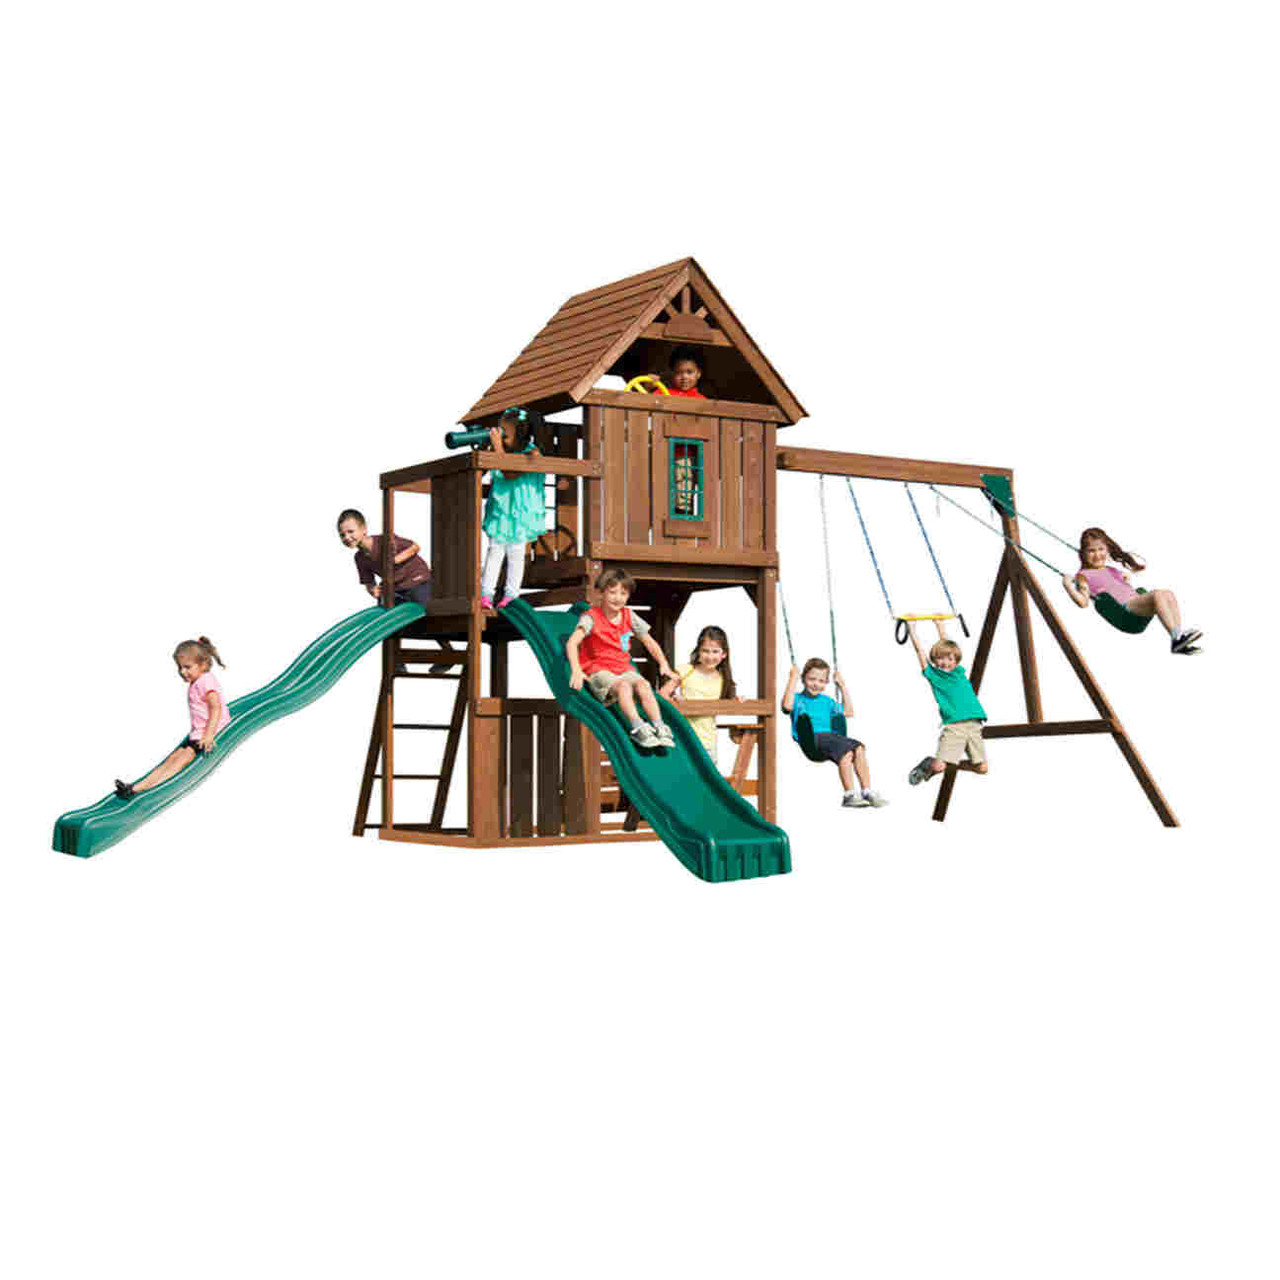 Monteagle Complete Swing Set (WS-8344) Children Playing